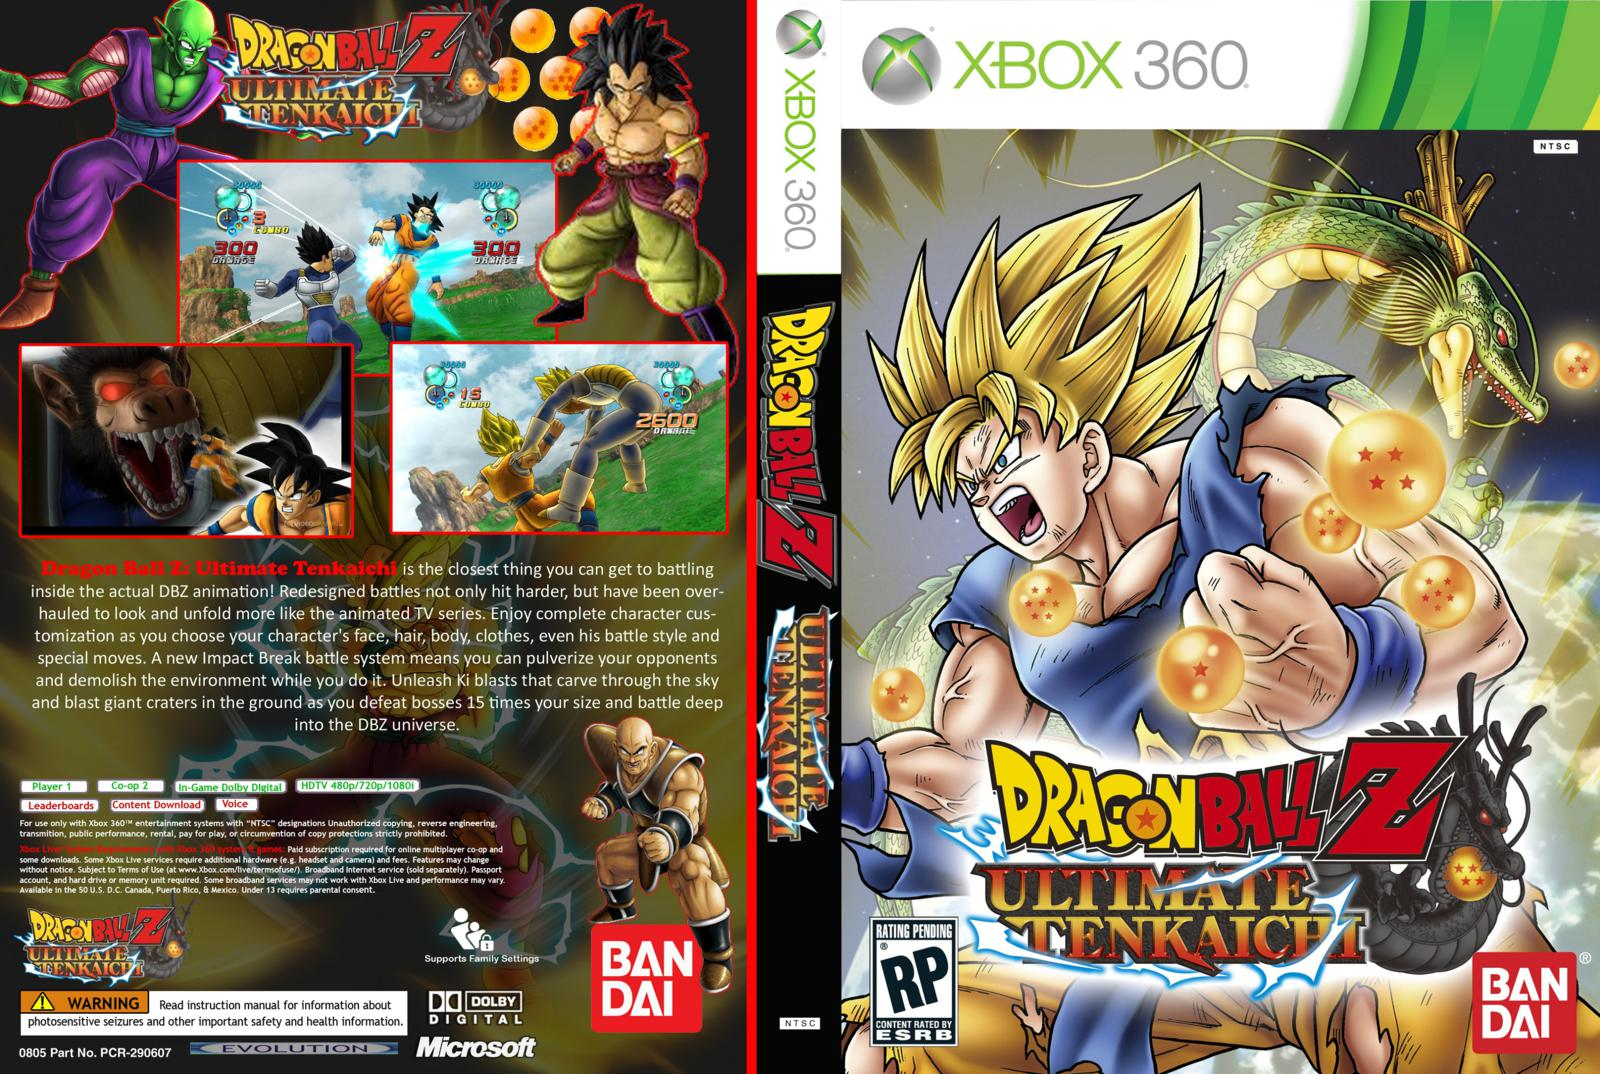 - Dragon Ball Z: Ultimate Tenkaichi - XBOX 360 - Orbit Dragon Ball